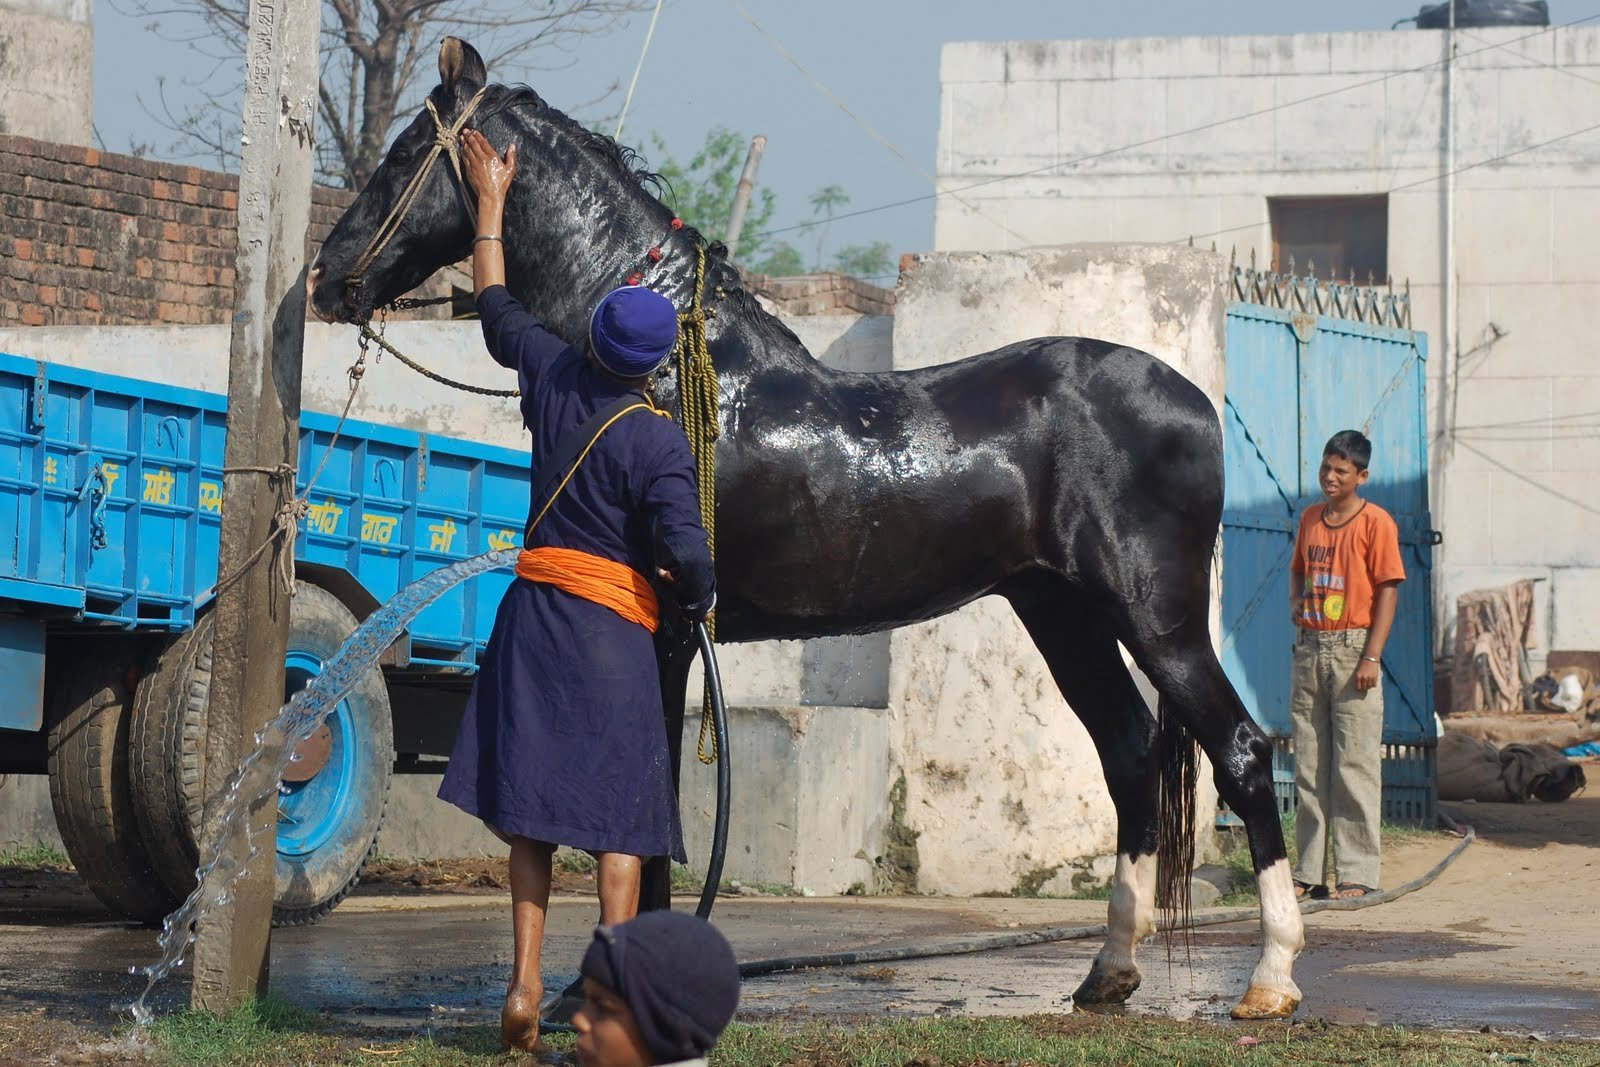 Hukam number 30 - Learn and train in the skills of weaponry and horseriding